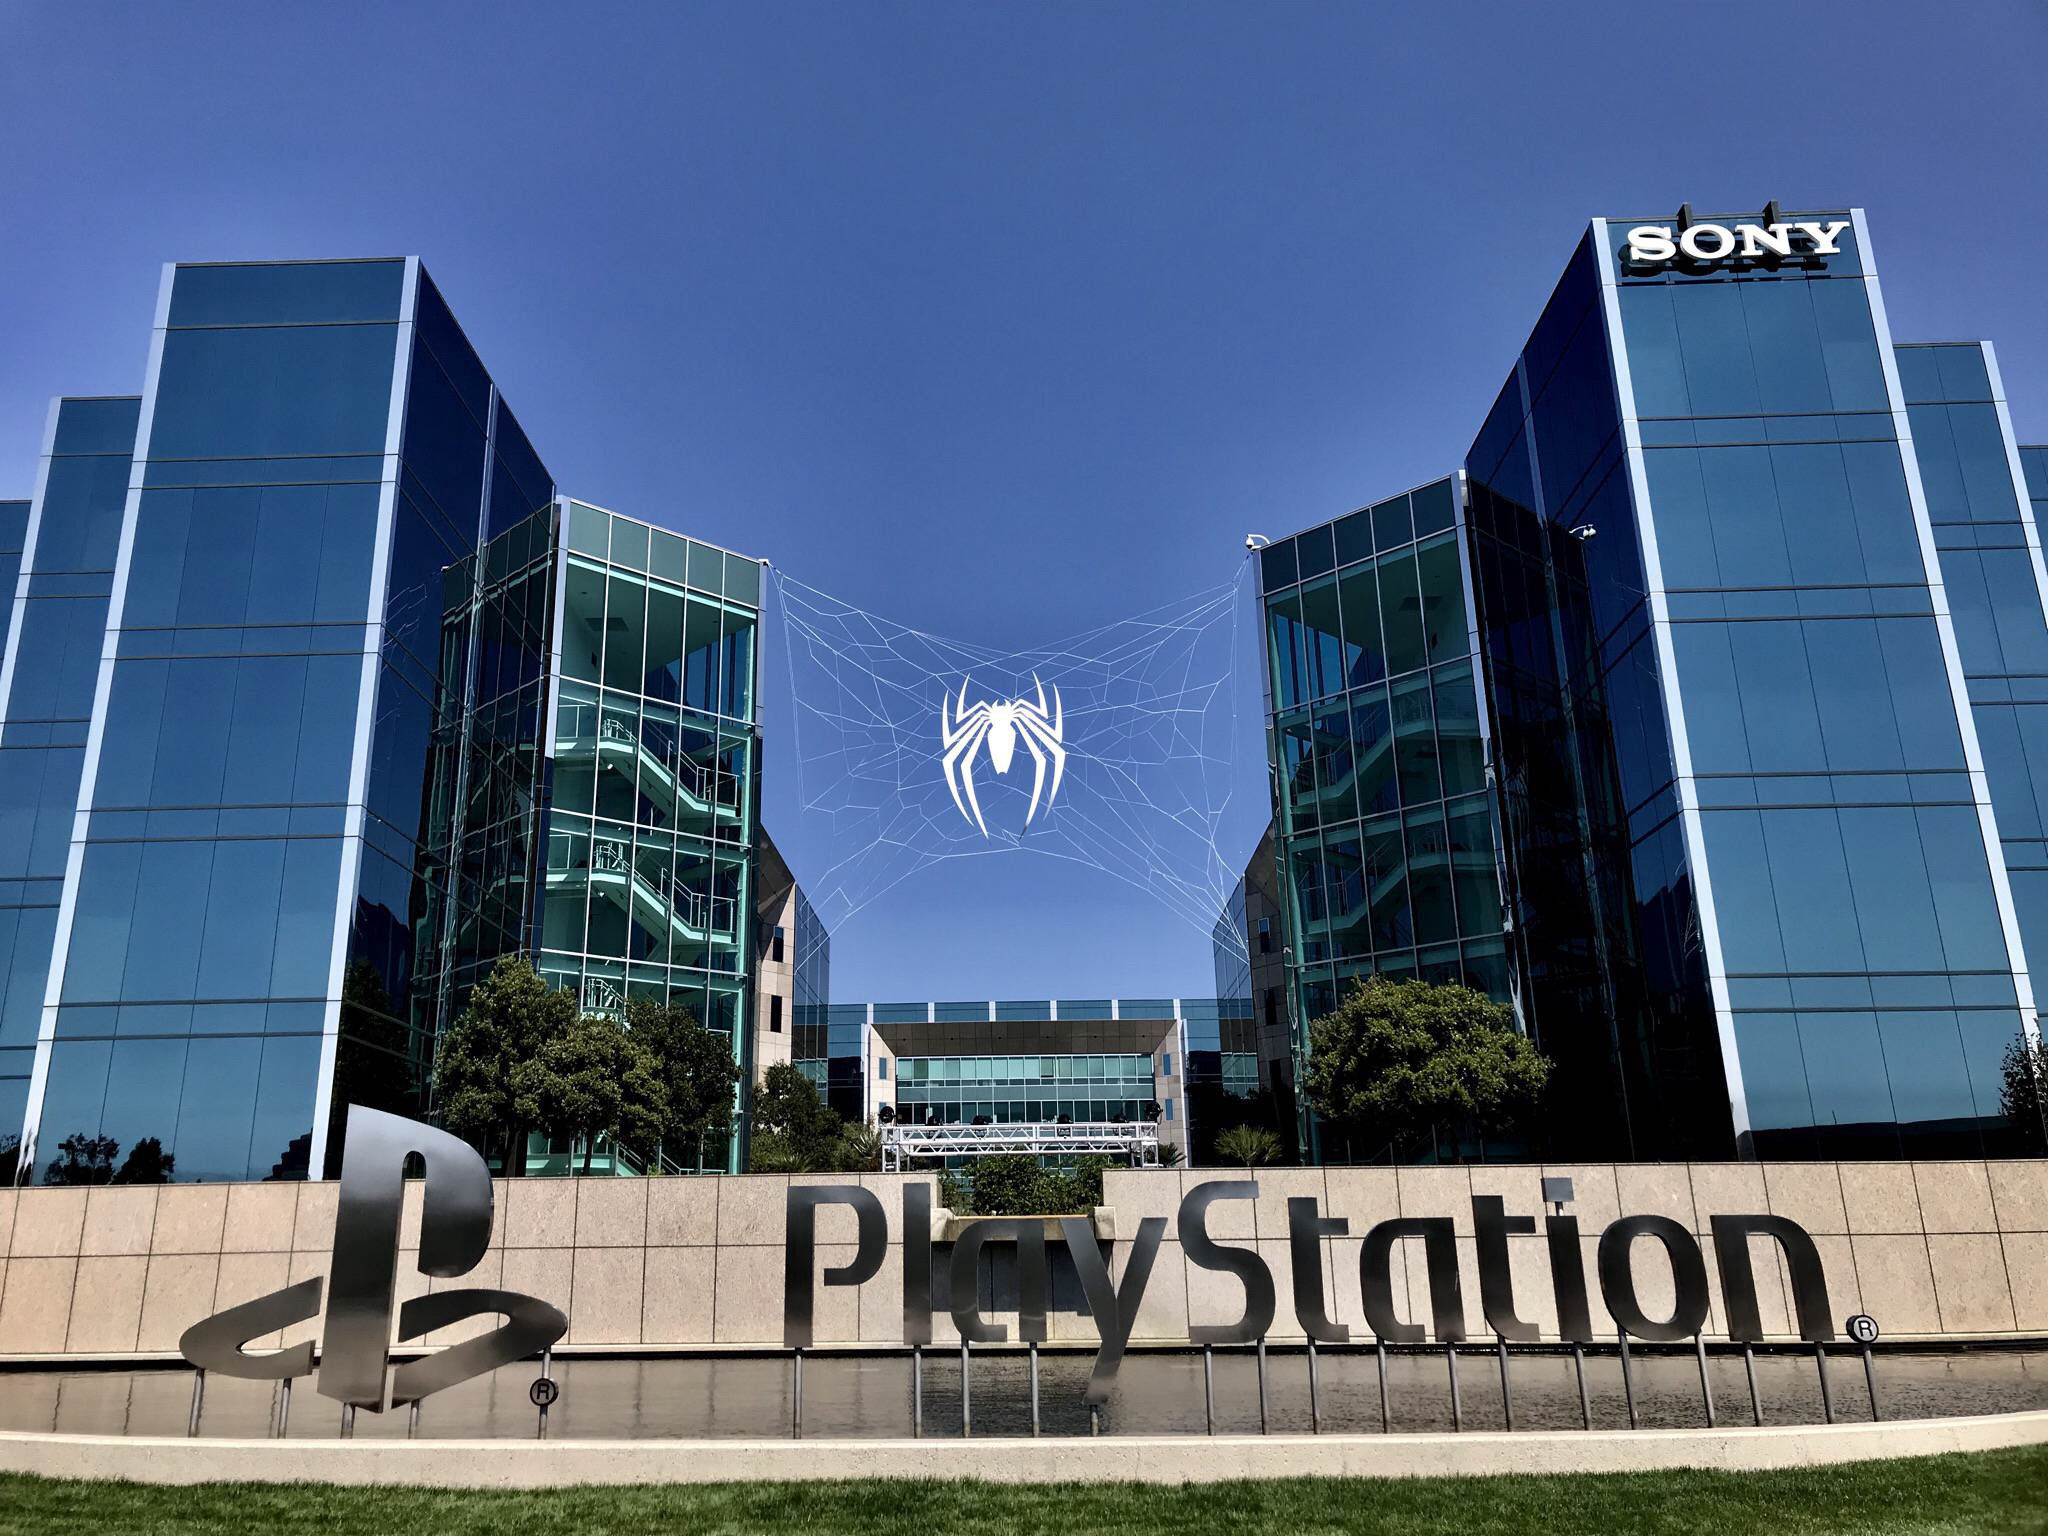 PlayStation continues to be a star with growing profits in Q2 2018